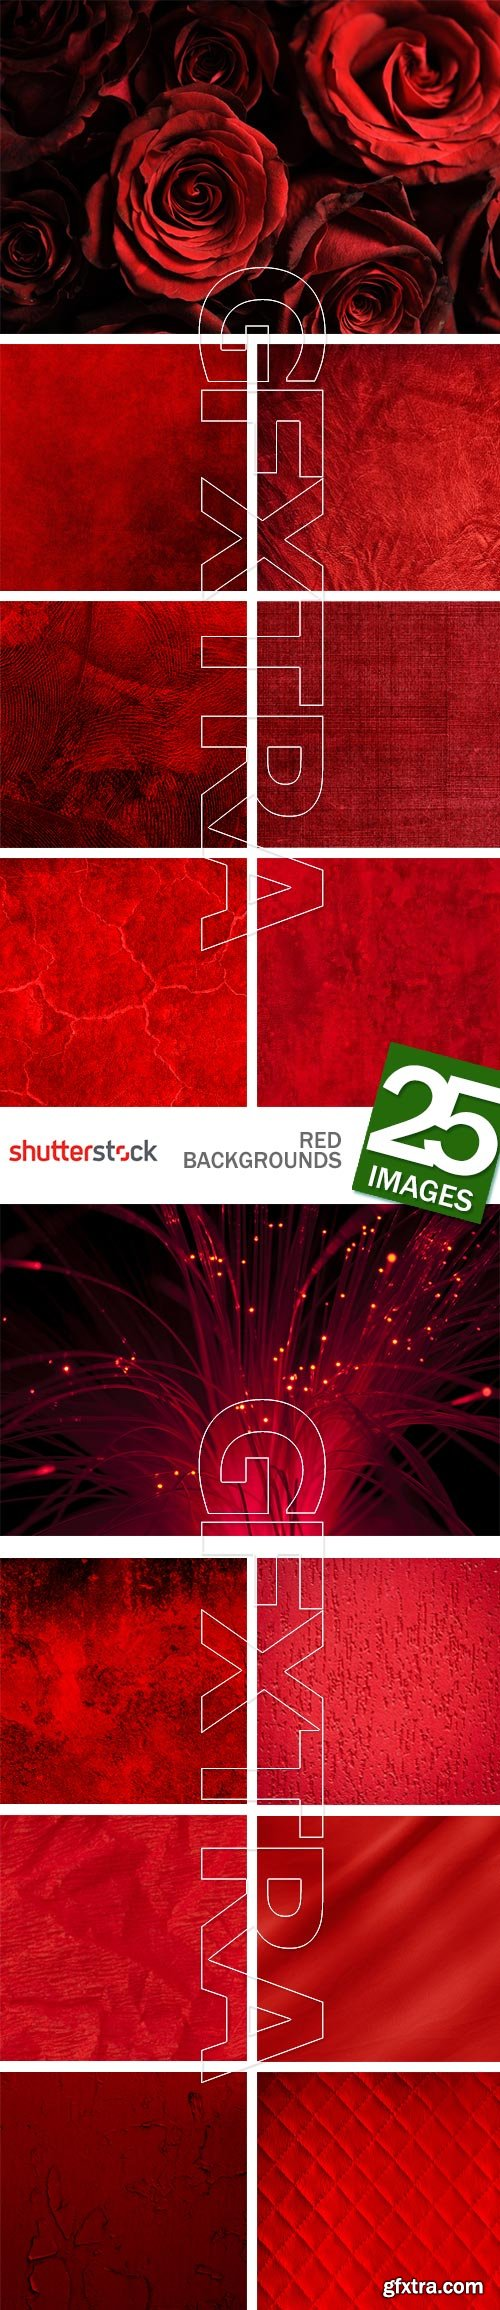 Red Backgrounds 25xJPG